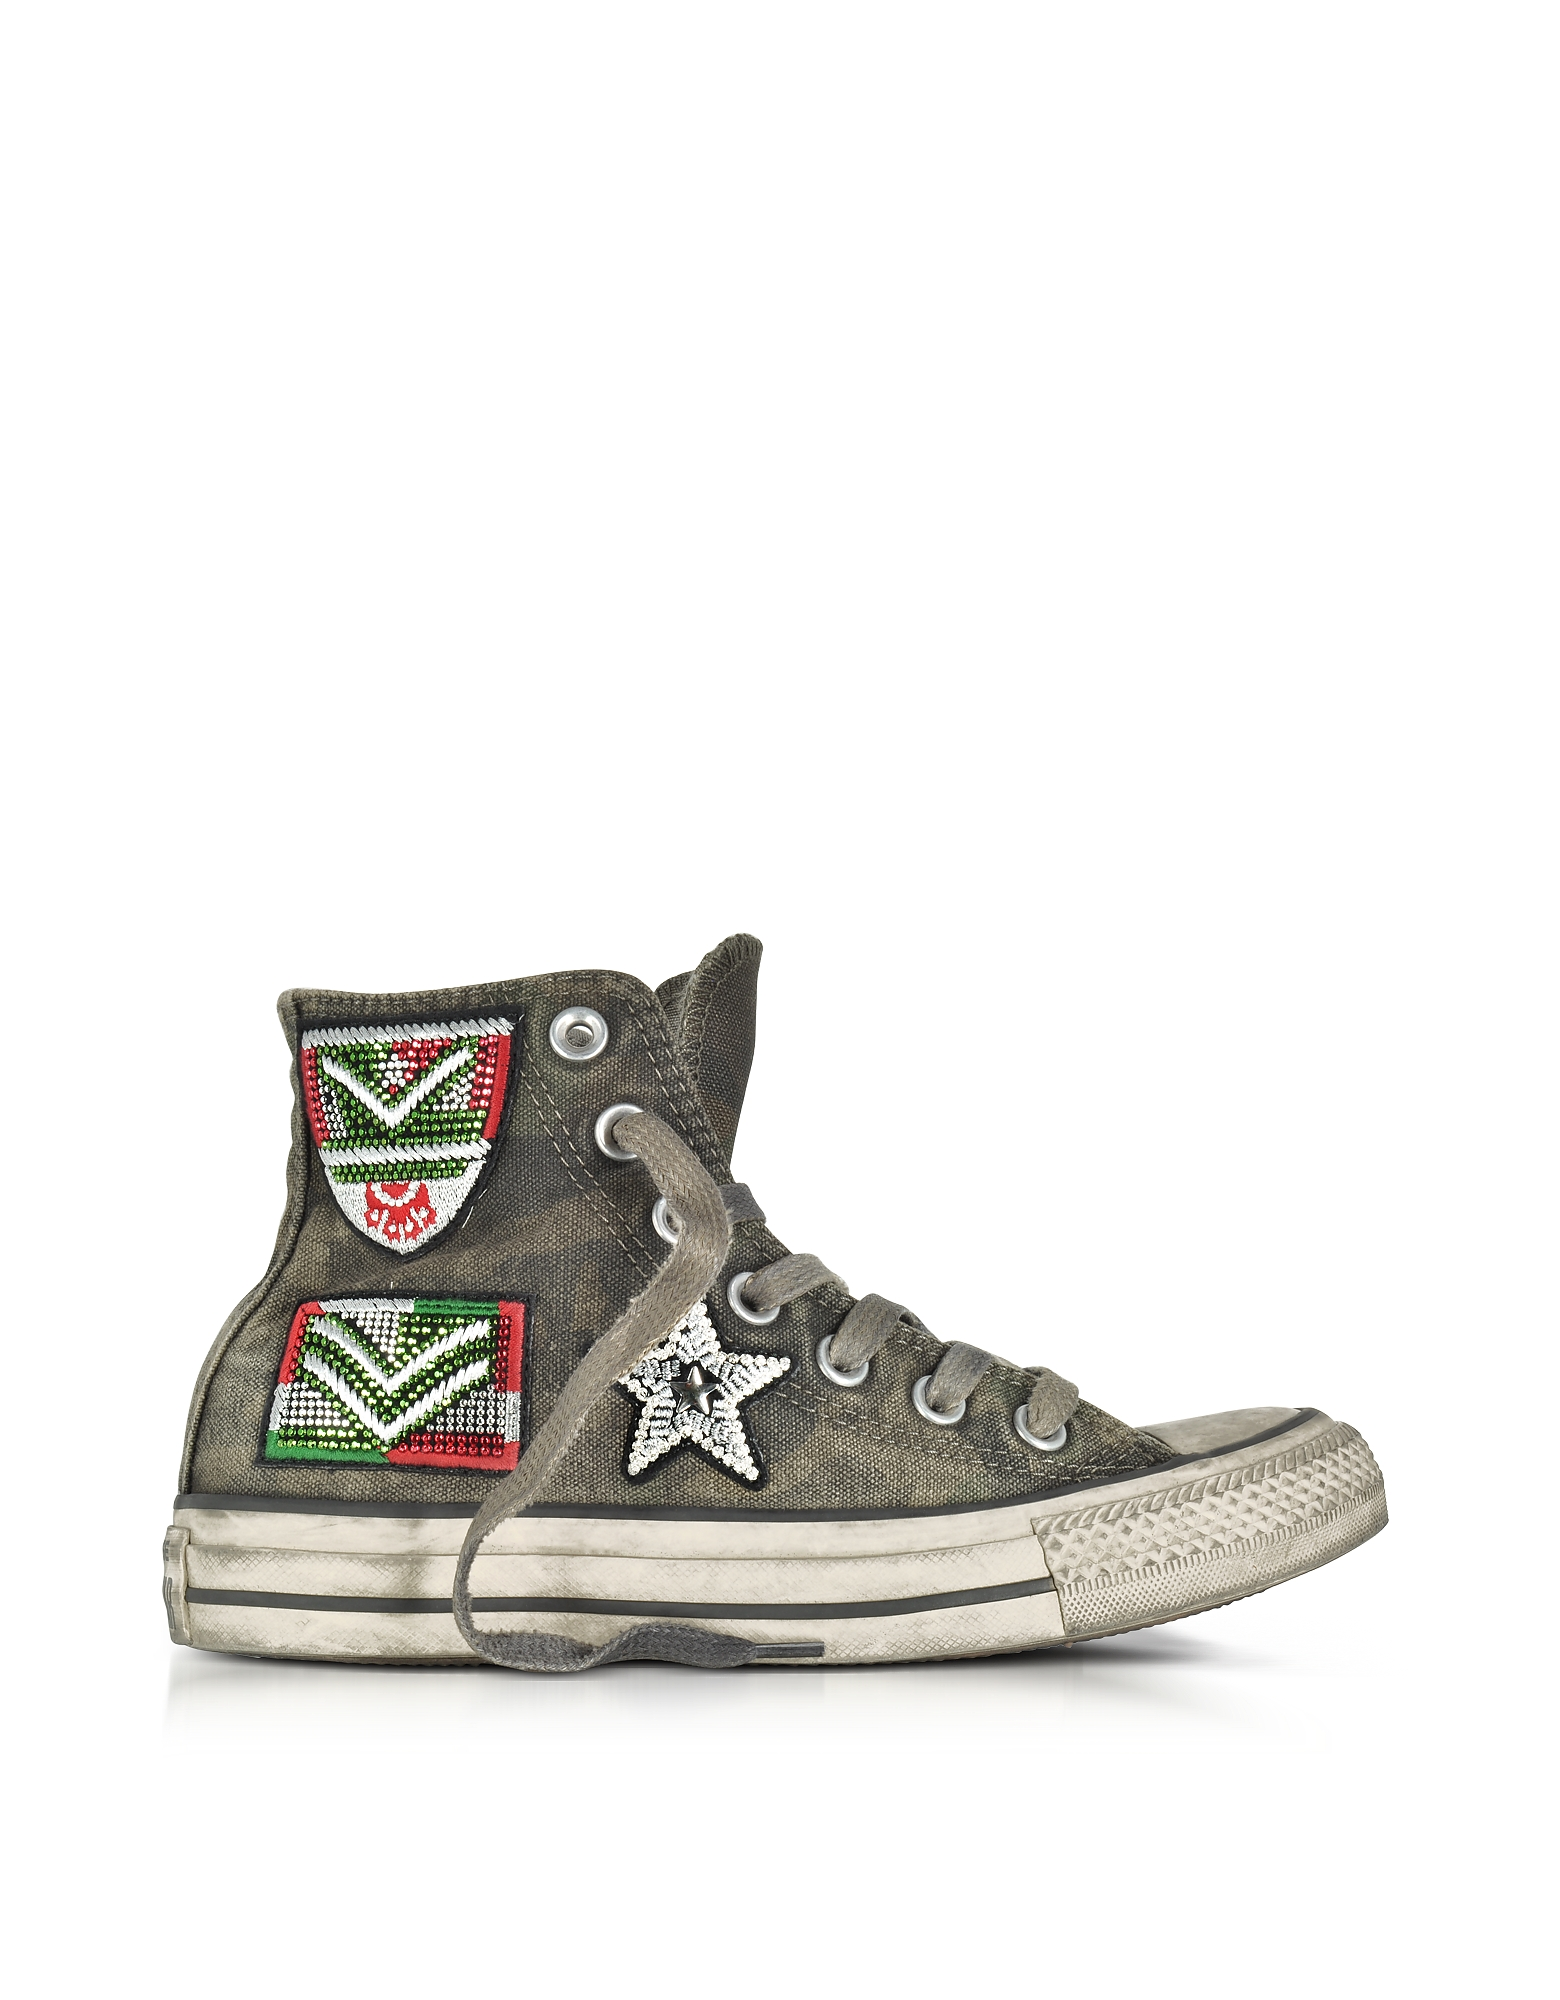 Converse Limited Edition Shoes, Chuck Taylor All Star Camo Canvas LTD Sneakers